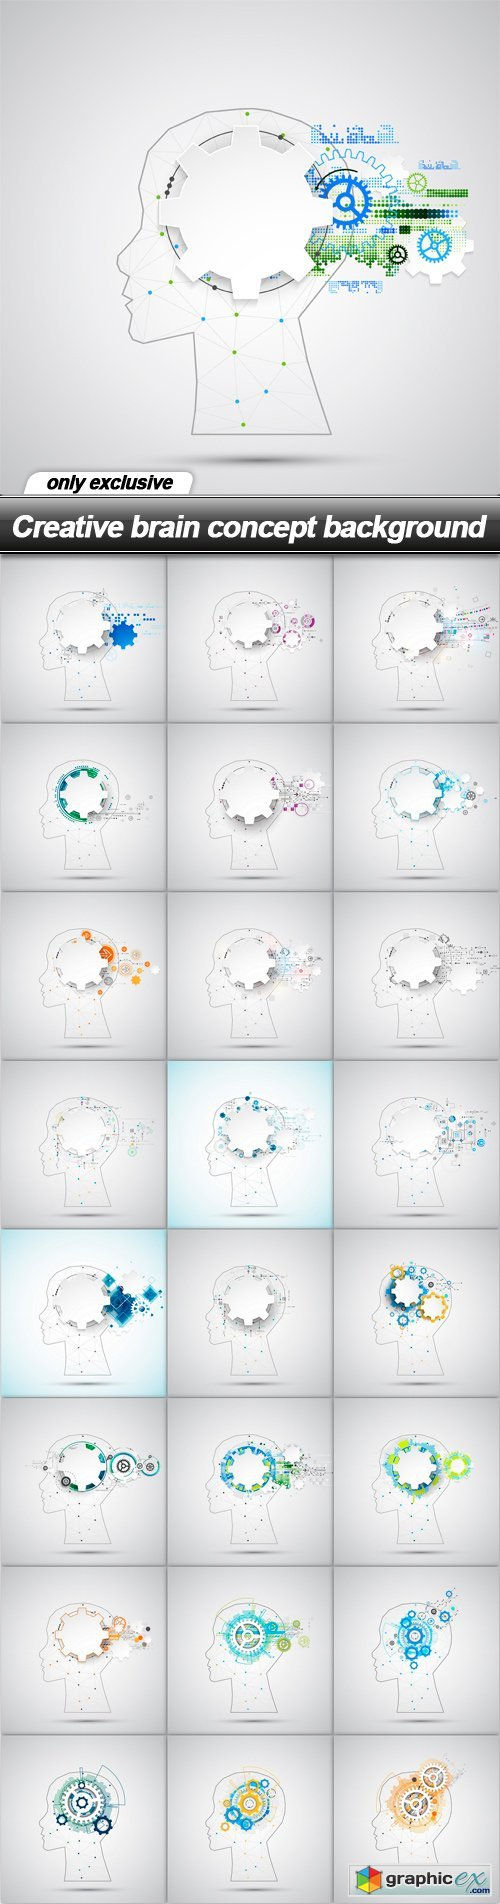 Creative brain concept background - 25 EPS